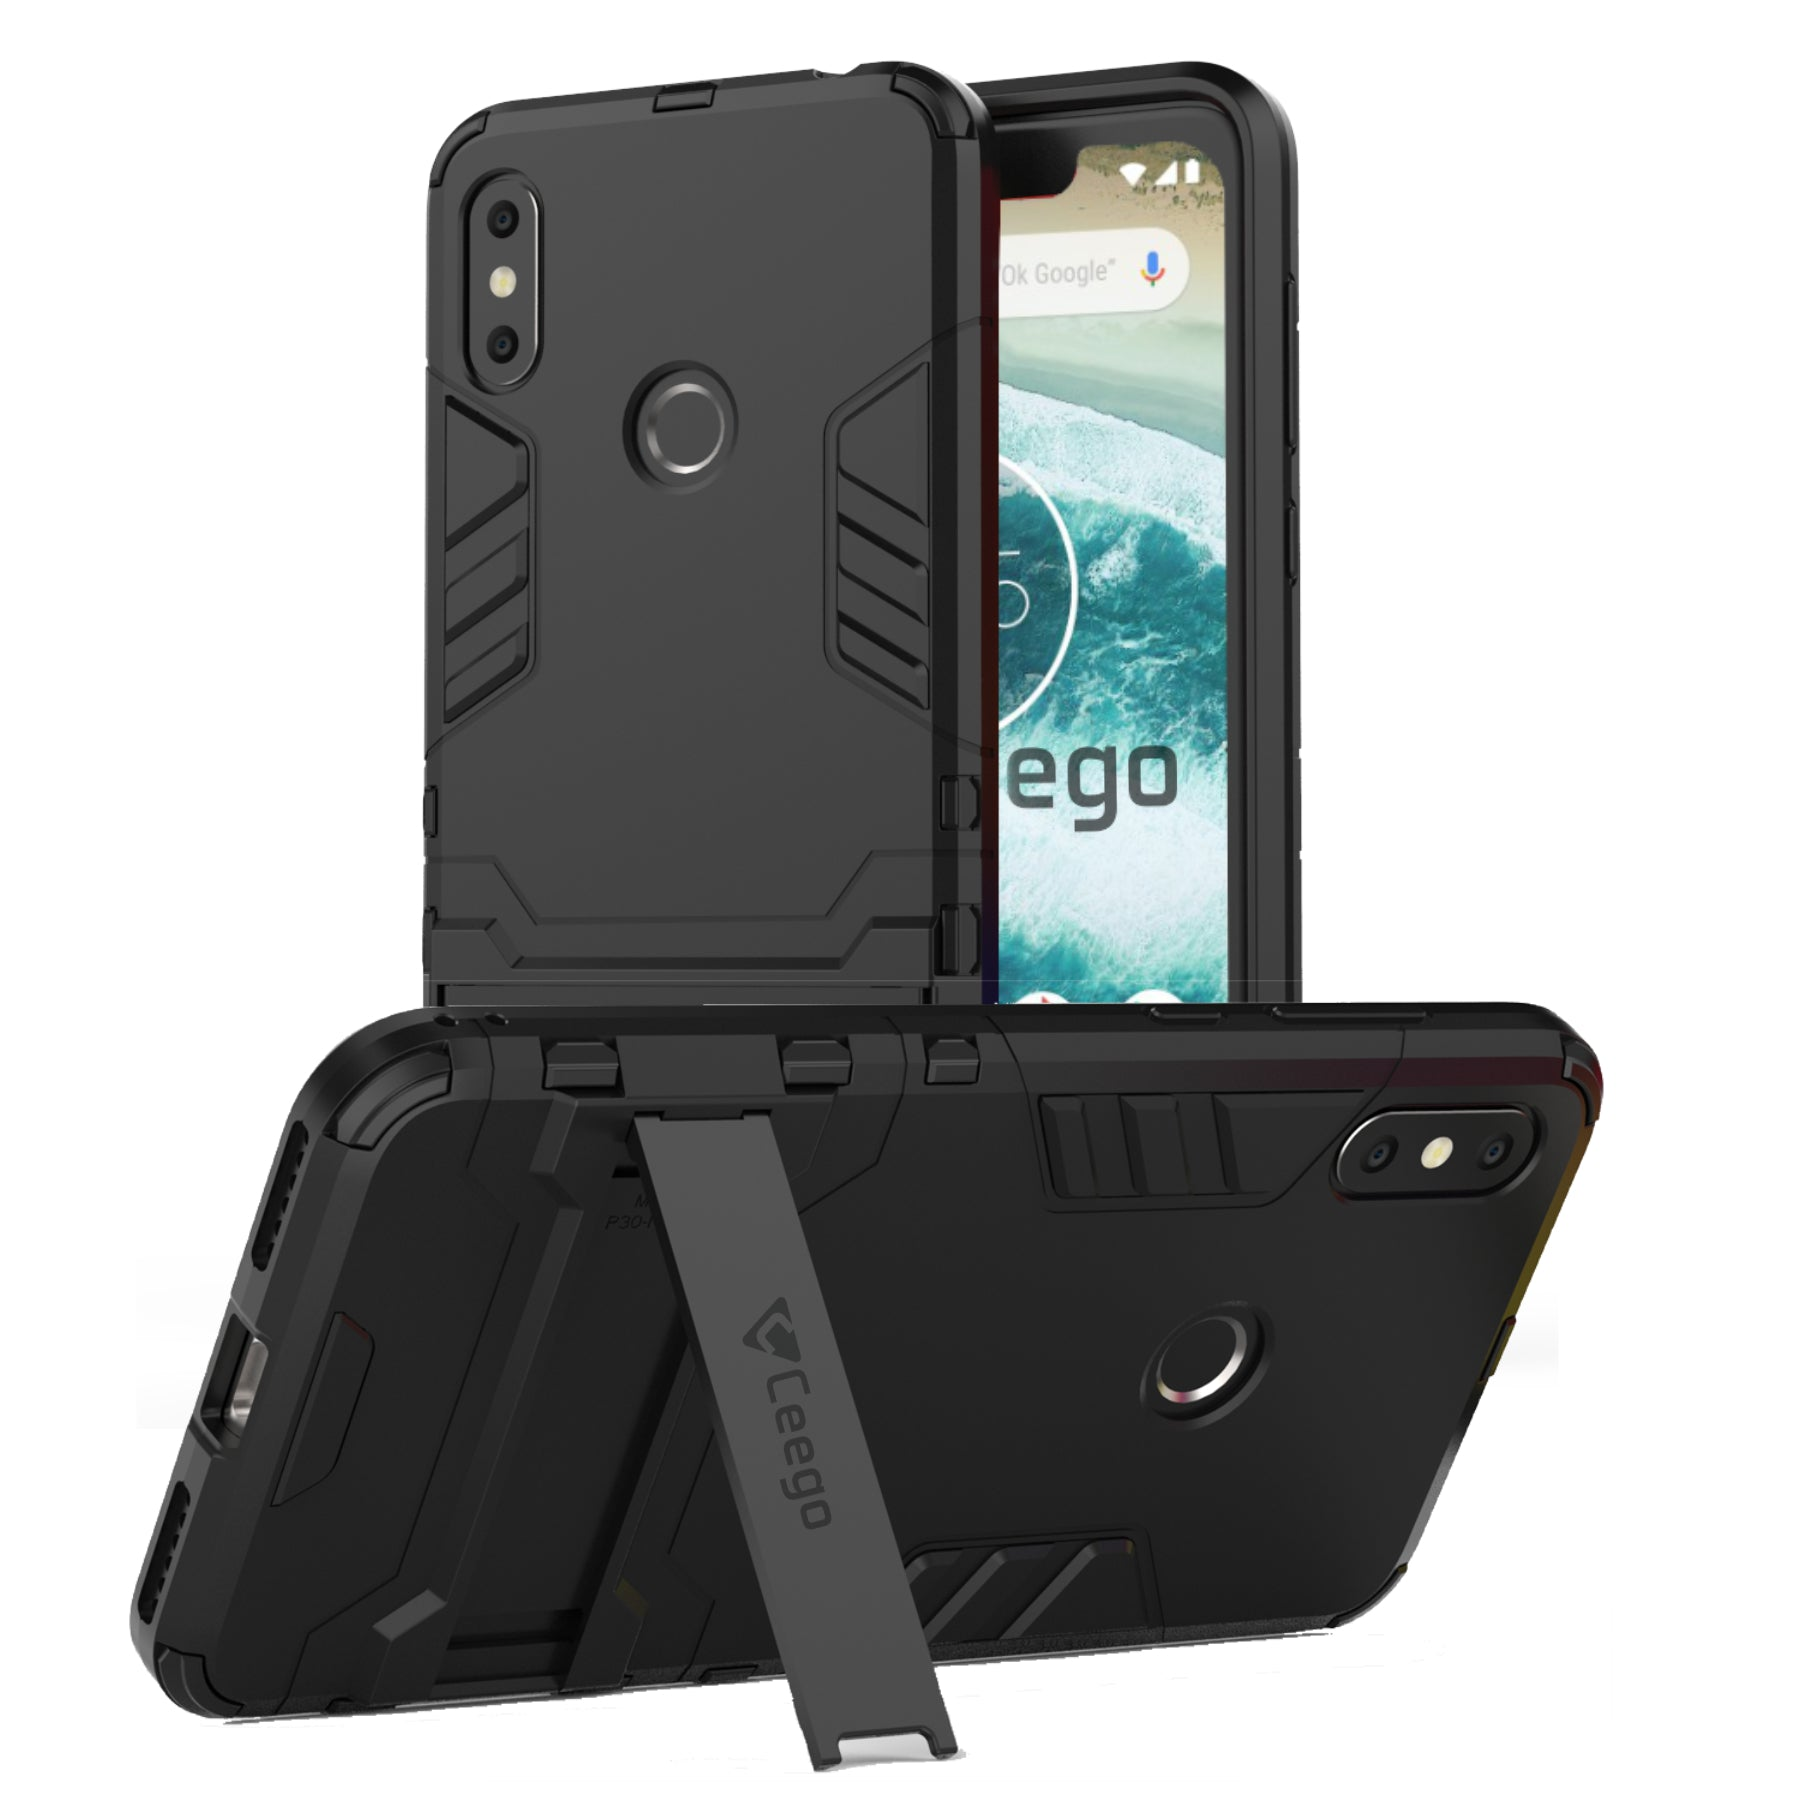 Ceego Stealth Defence Back Case for Motorola One Power – Matte Black